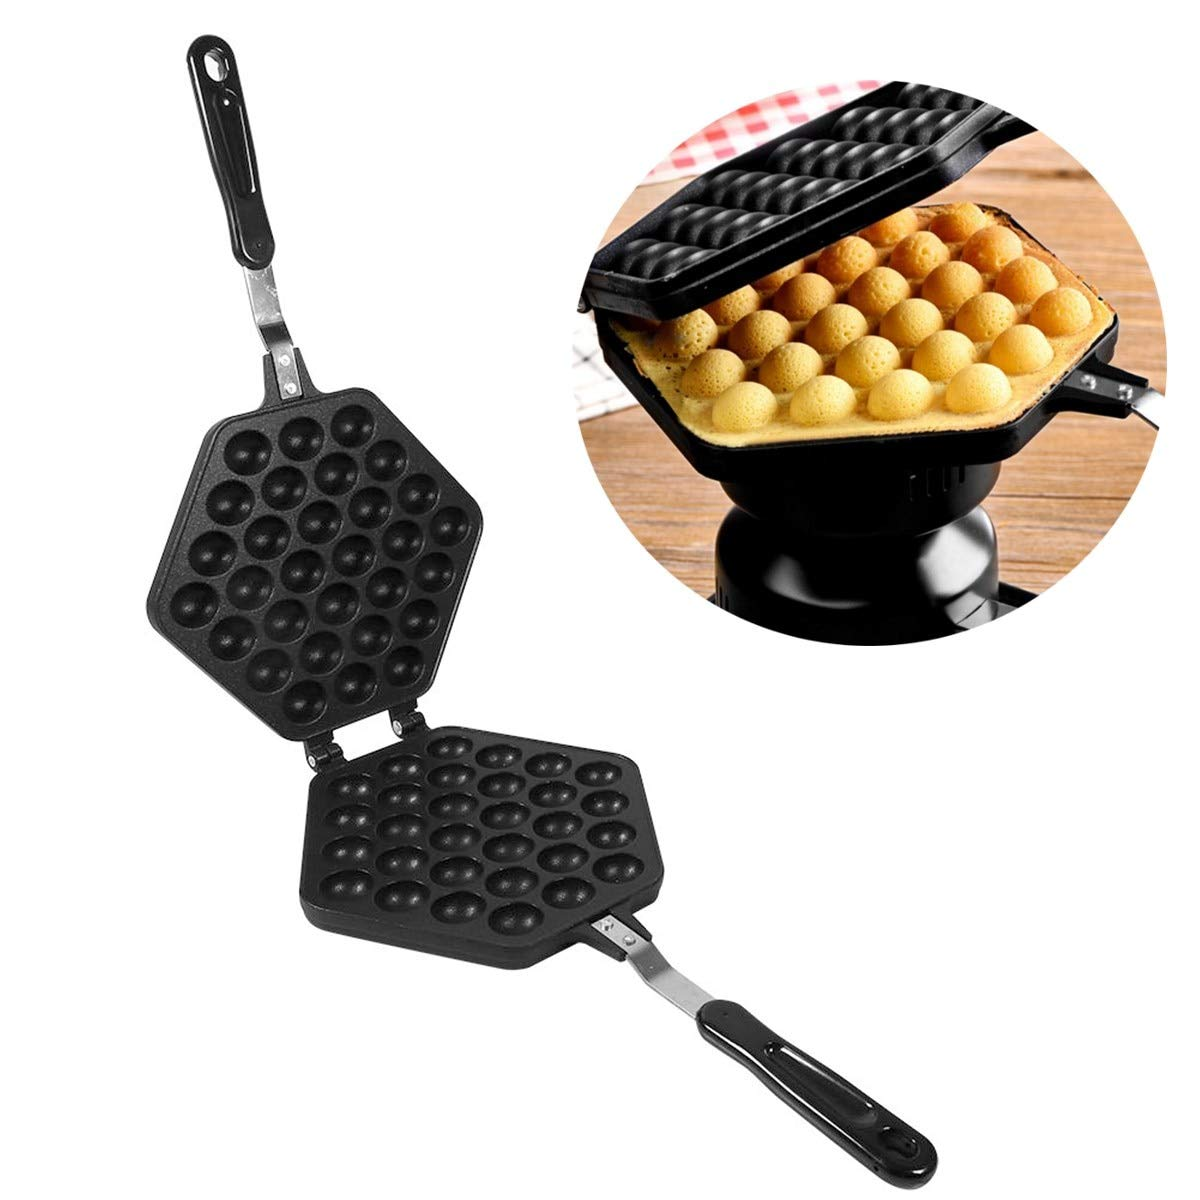 Eggs Puffs Pan Grill Baking Oven Mold Roll Aluminum Alloy Classic Burning Plate Barbecue DIY Cooking Eggs Tools Bakeware